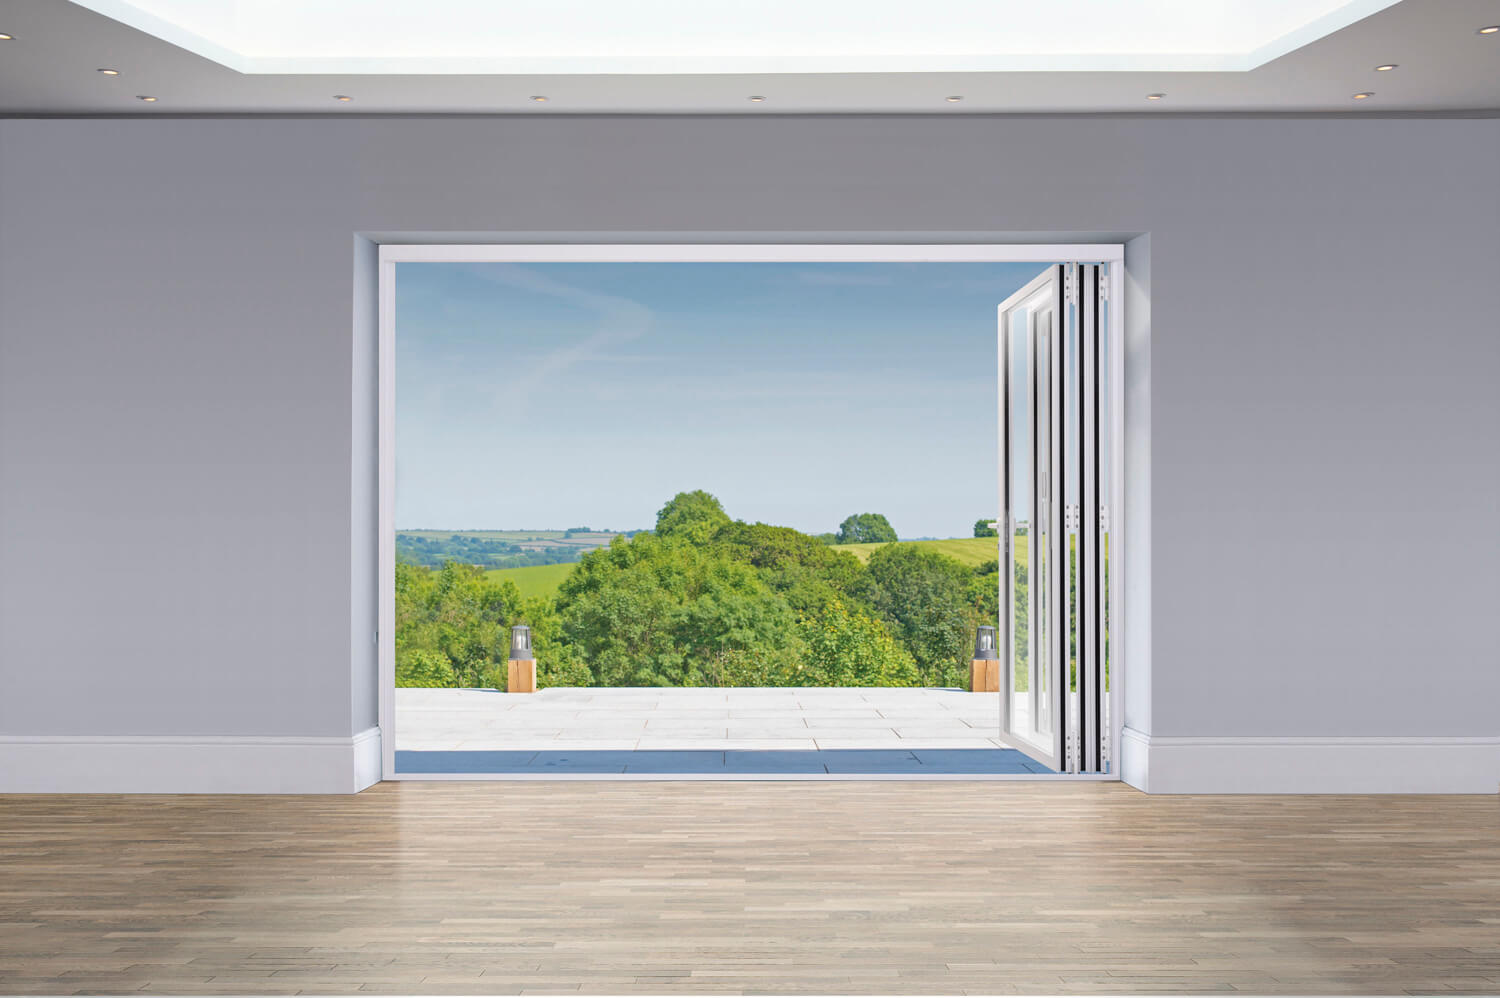 Origin OB 49 Bifold 02 - New Product Release from Origin: OB-49 Slimline Bifolds